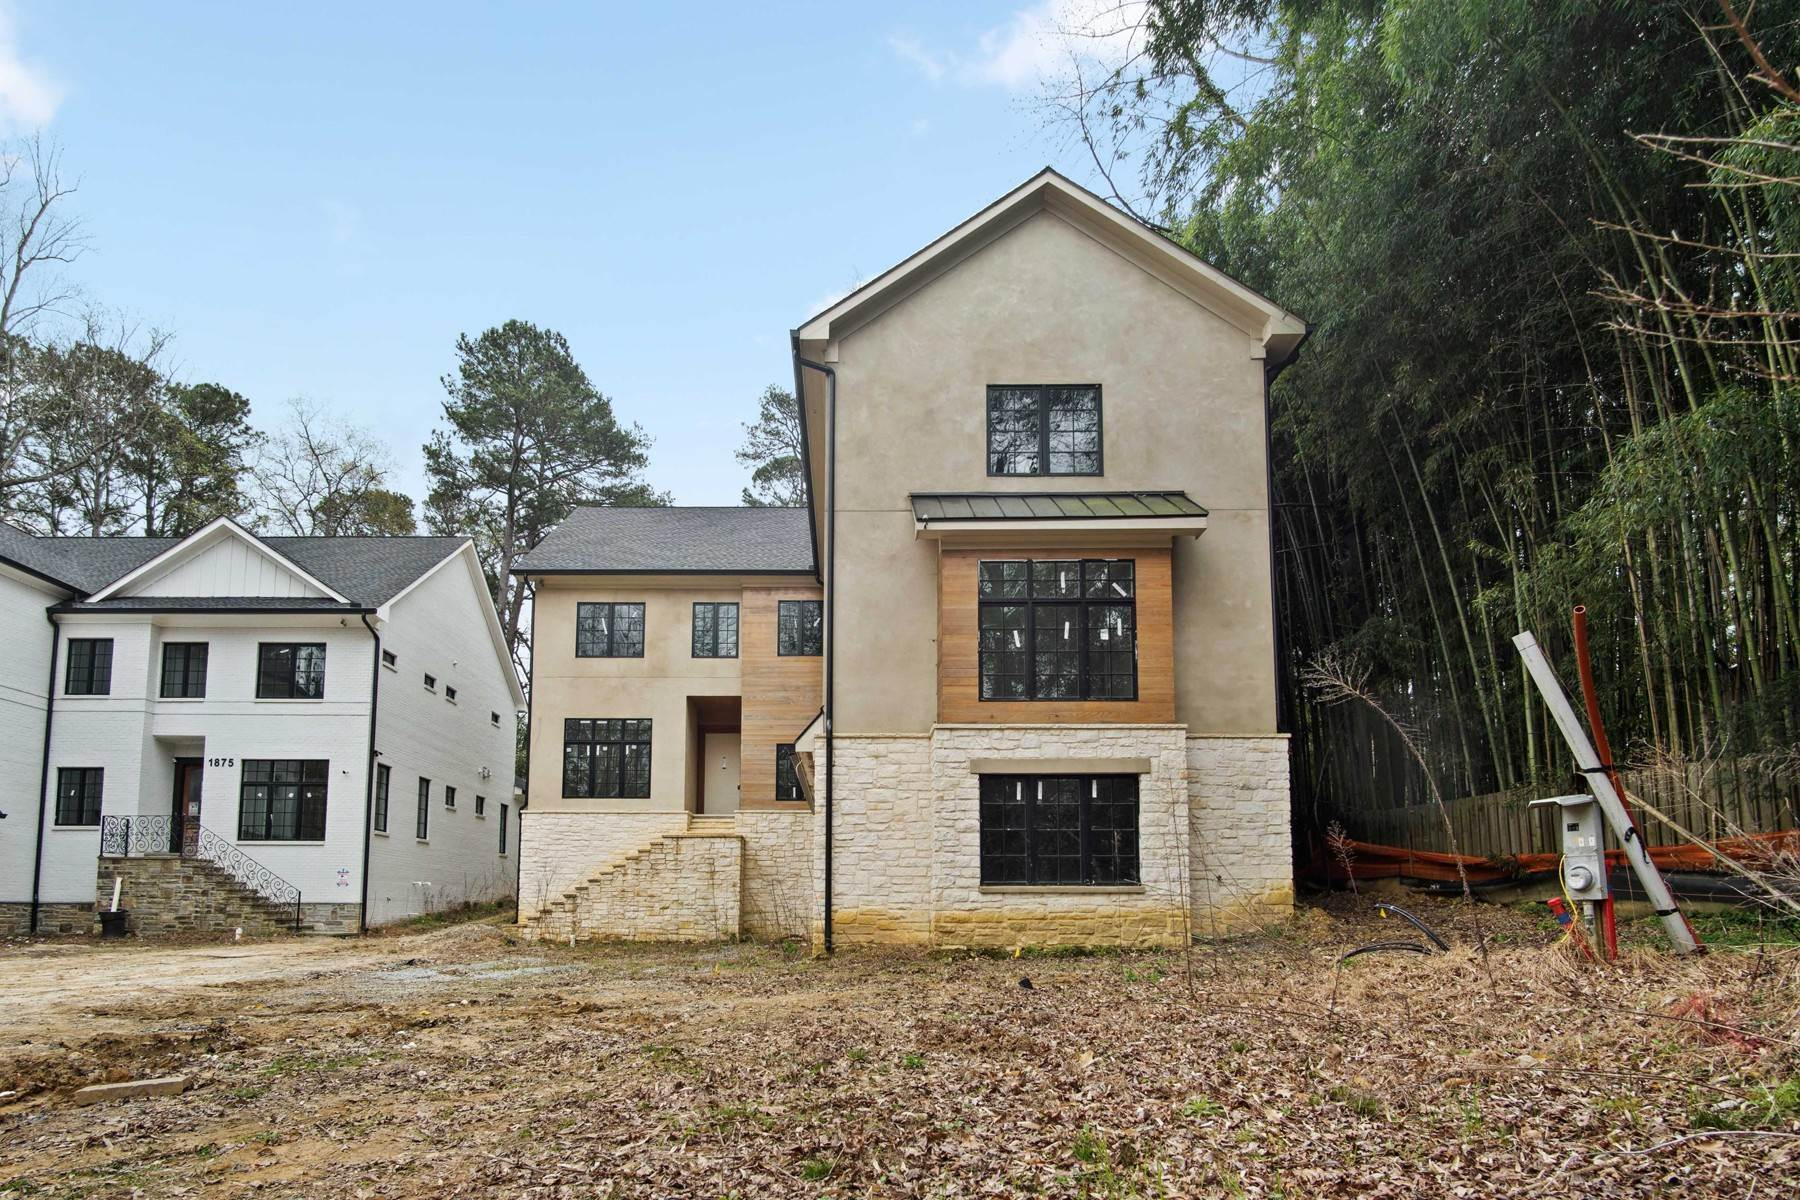 Single Family Homes for Sale at Sleek New Construction in the Heart of Morningside 1871 Windemere Drive Atlanta, Georgia 30324 United States